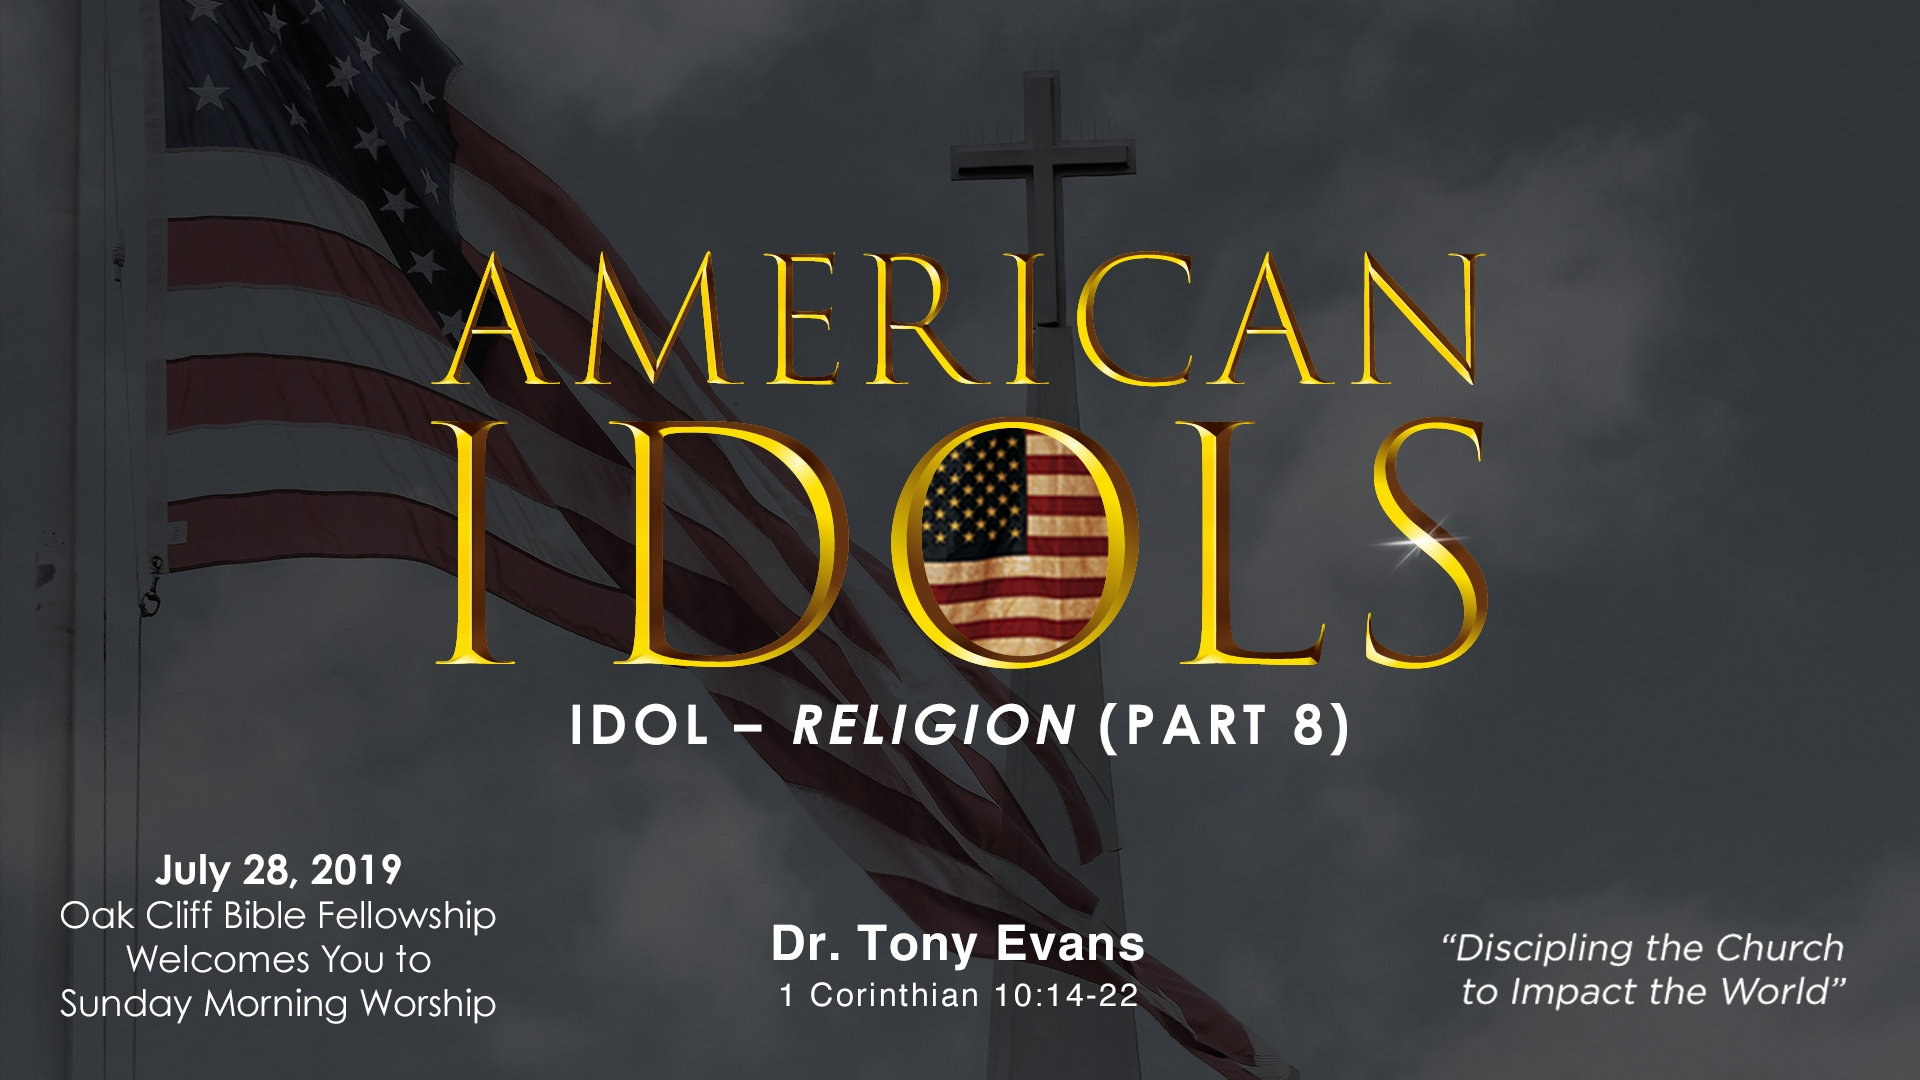 American Idols: Religion by Dr. Tony Evans